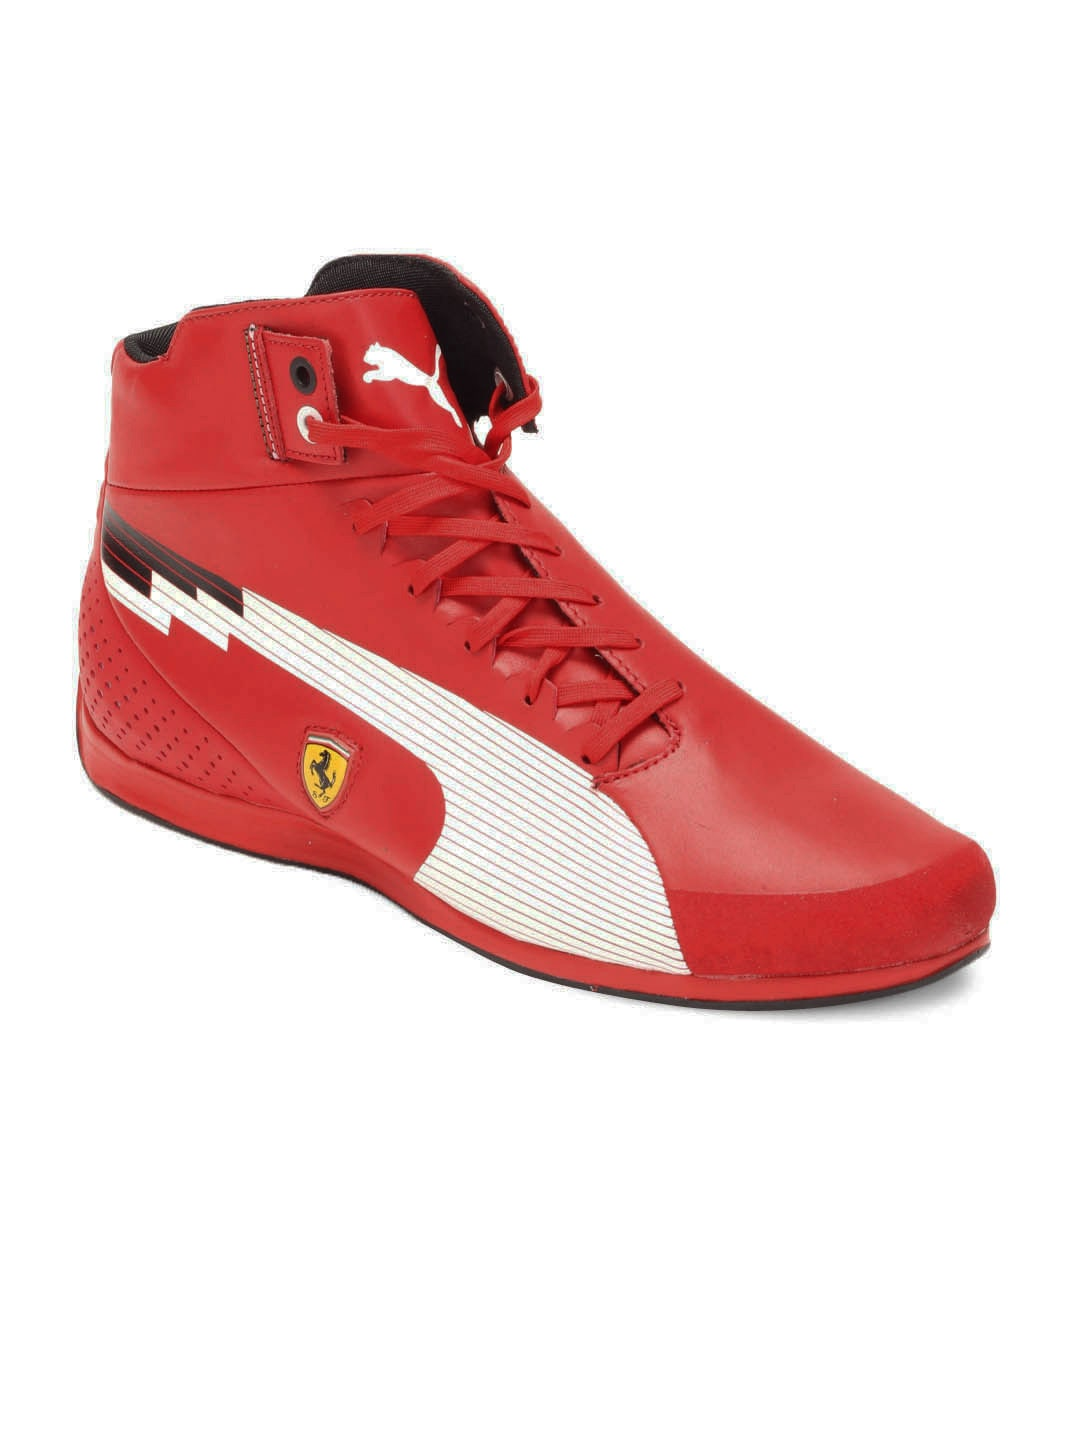 5444c96c00 puma ferrari shoes amazon